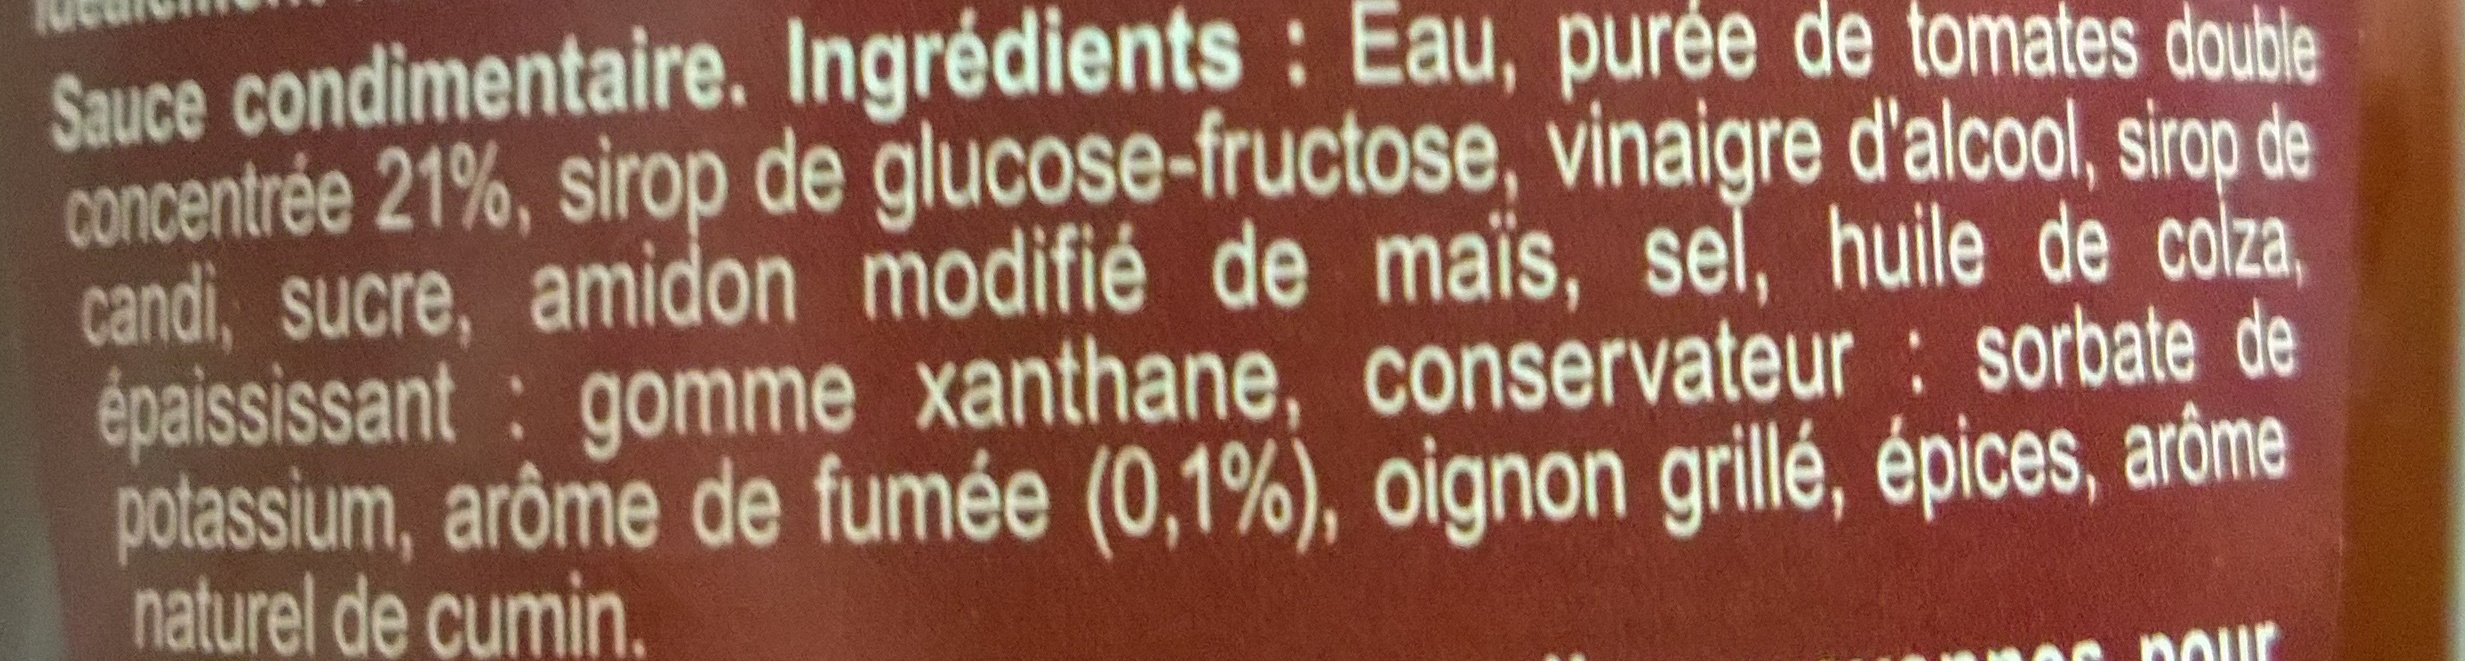 Sauce barbecue - Ingredients